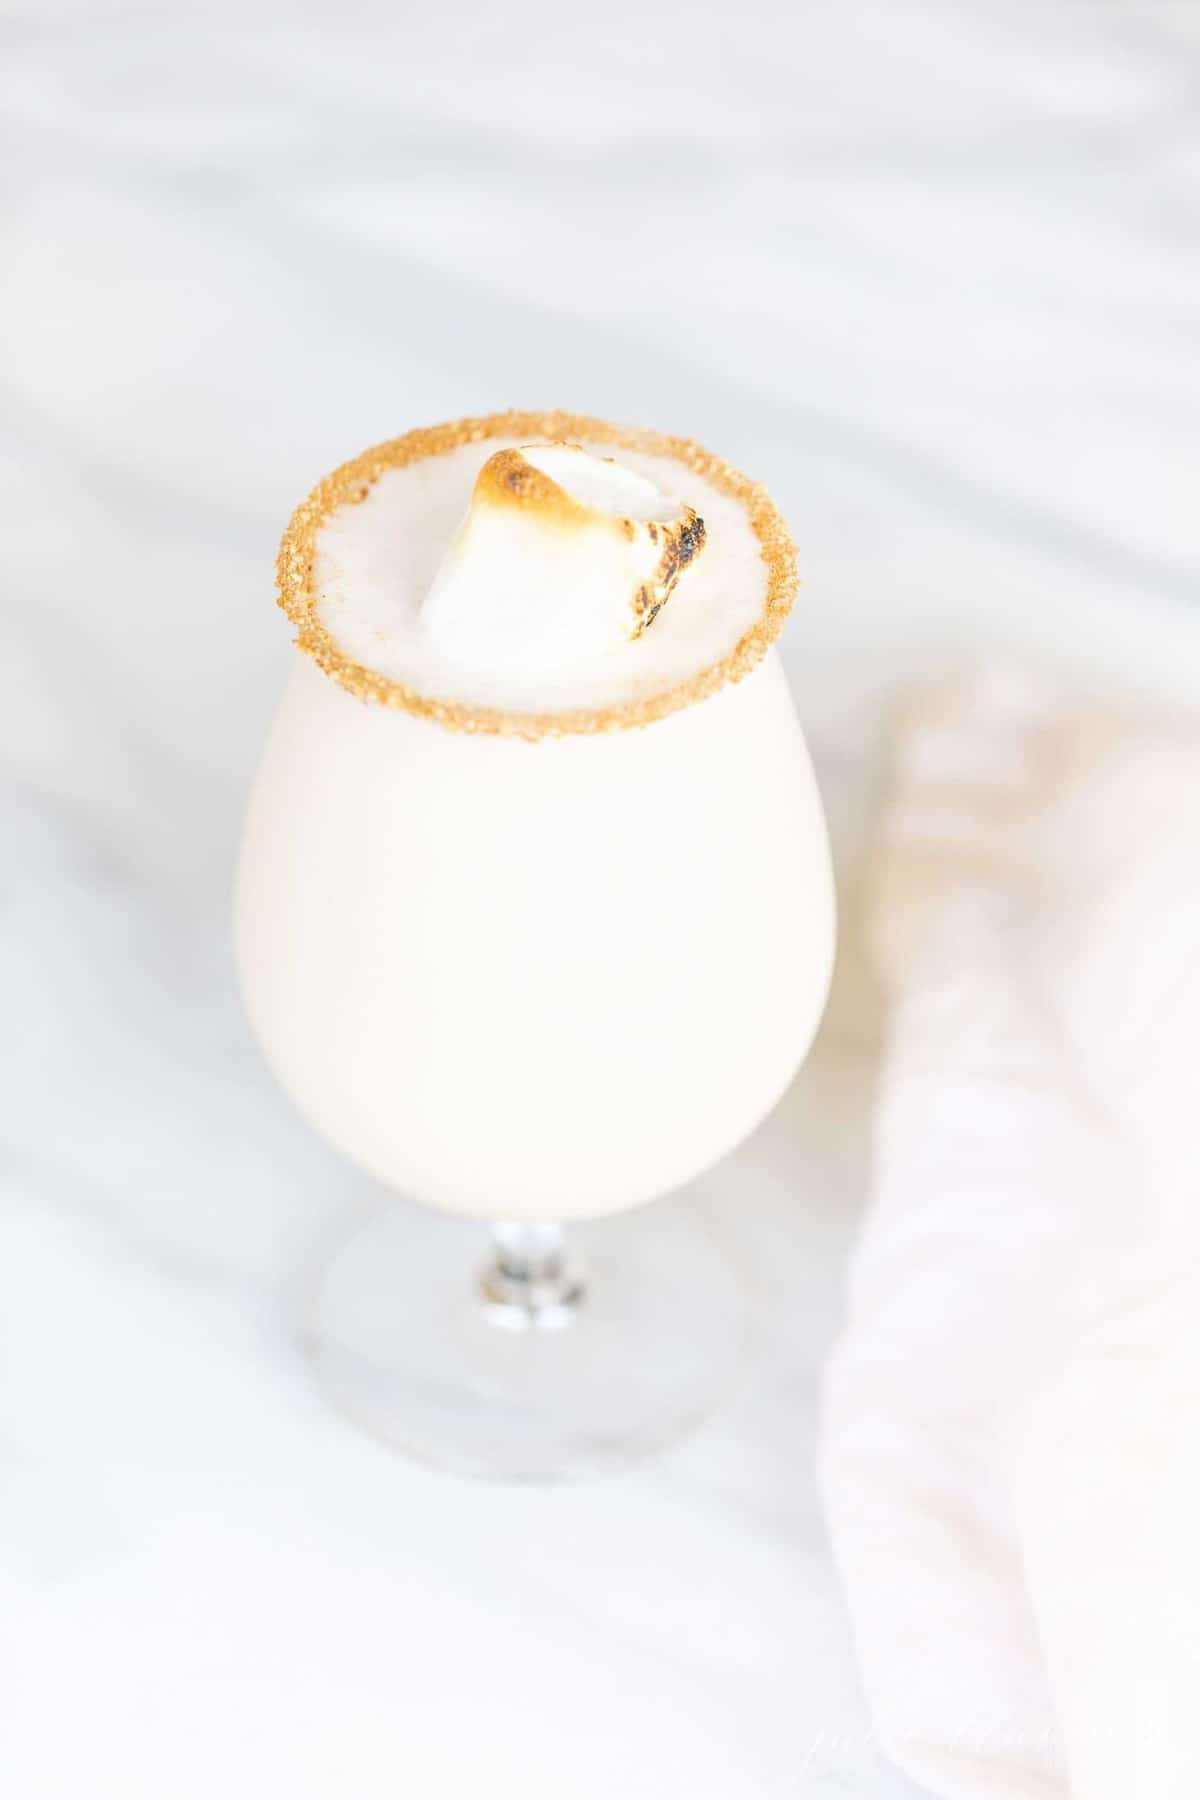 A white surface with a clear glass filled with amaretto flavor snowball cocktail recipe, toasted marshmallow as garnish.